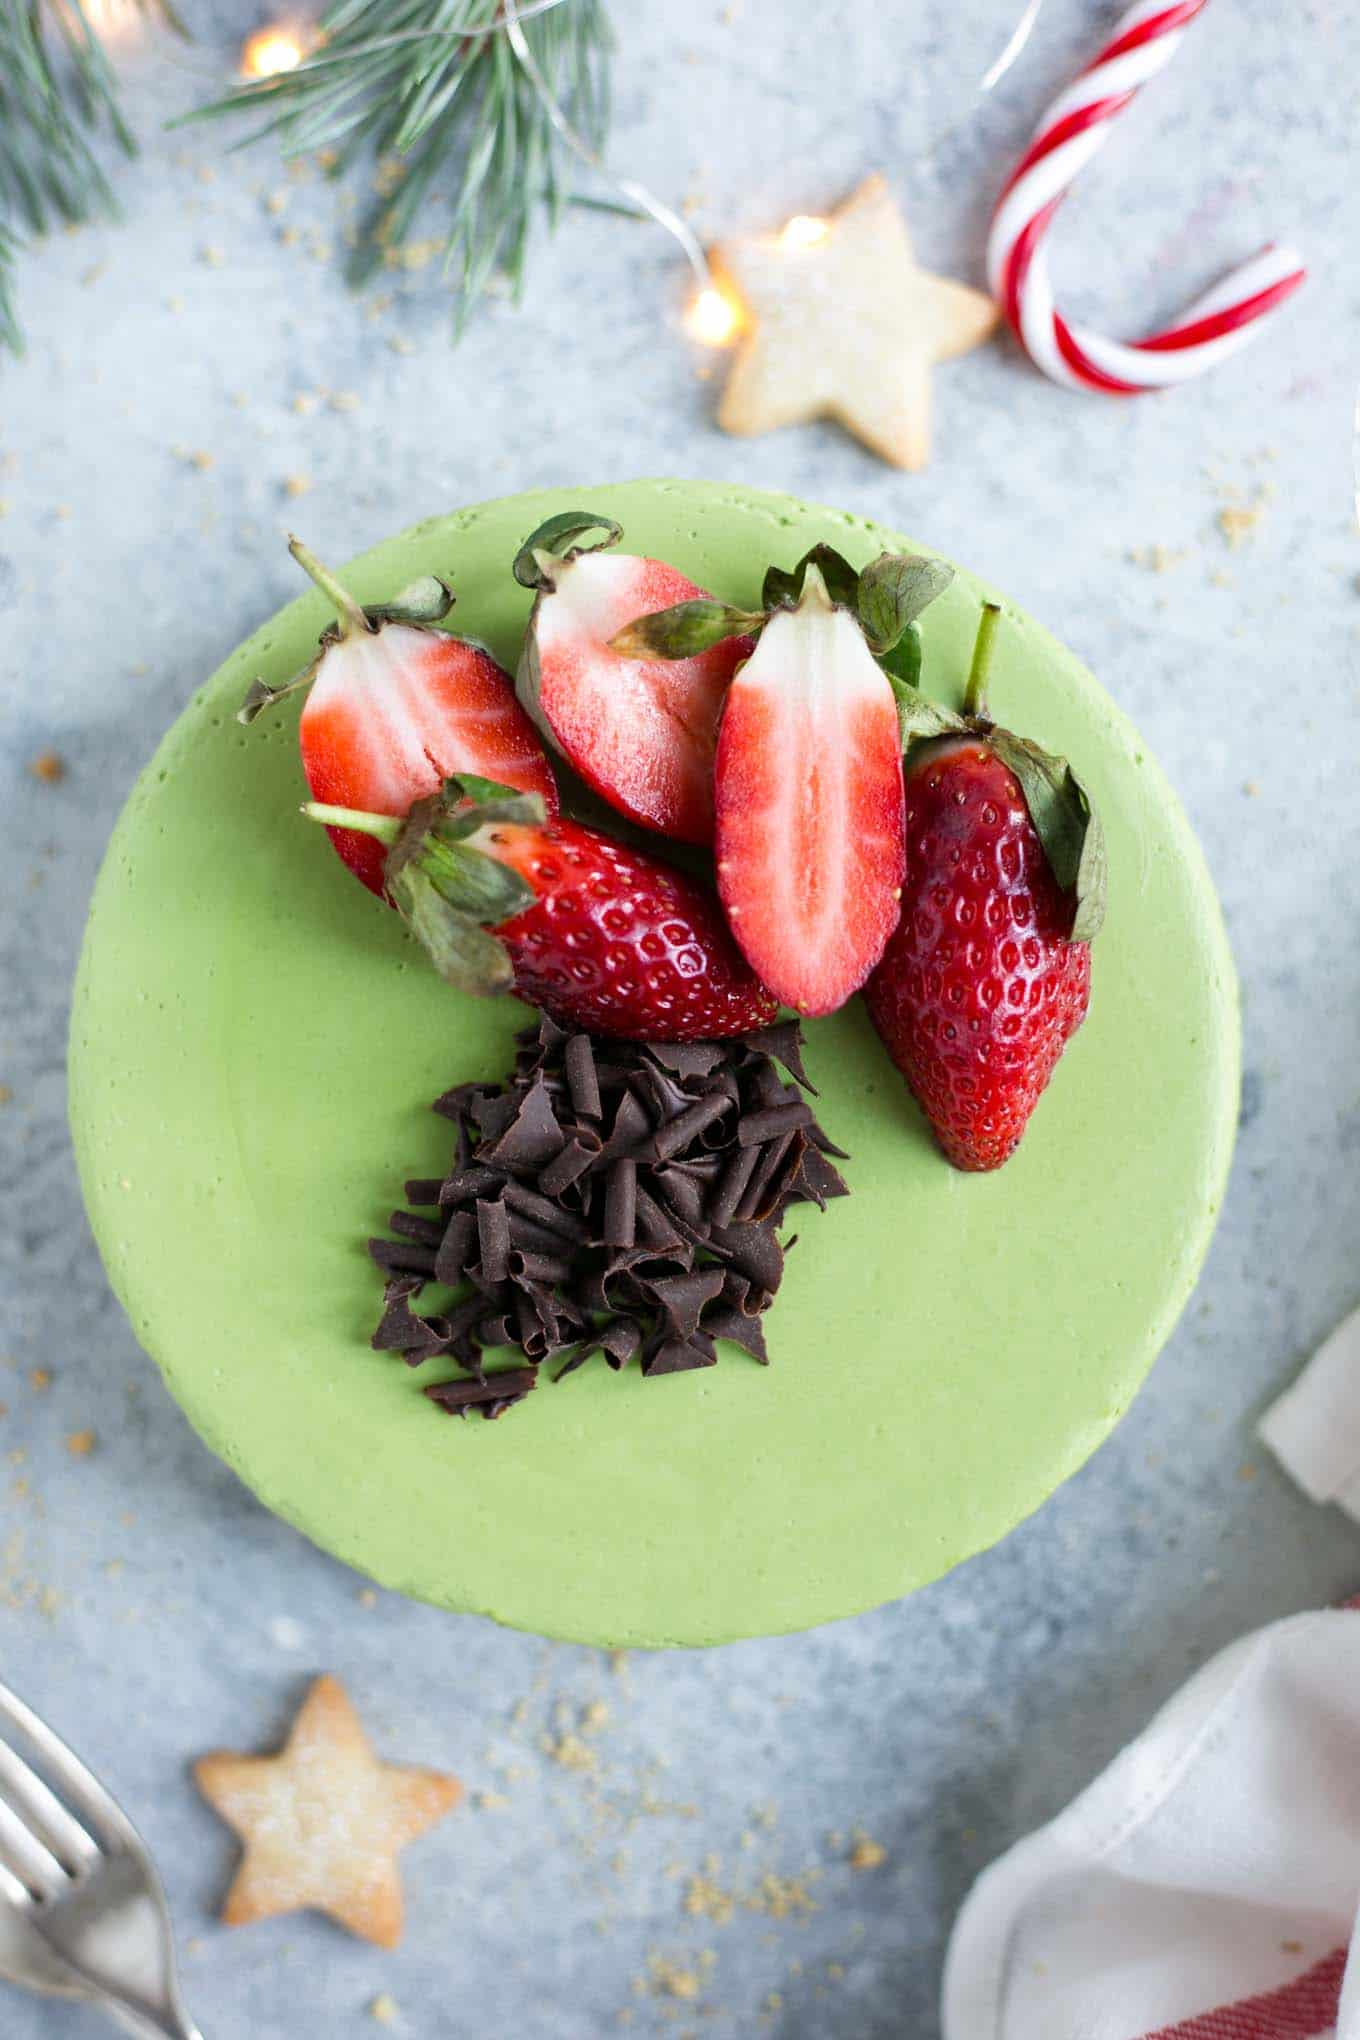 The creamiest matcha and ginger cheesecake! Soft and velvety texture, delicious and easy to make! #cheesecake #vegan #matcha #dairyfree | via @annabanana.co